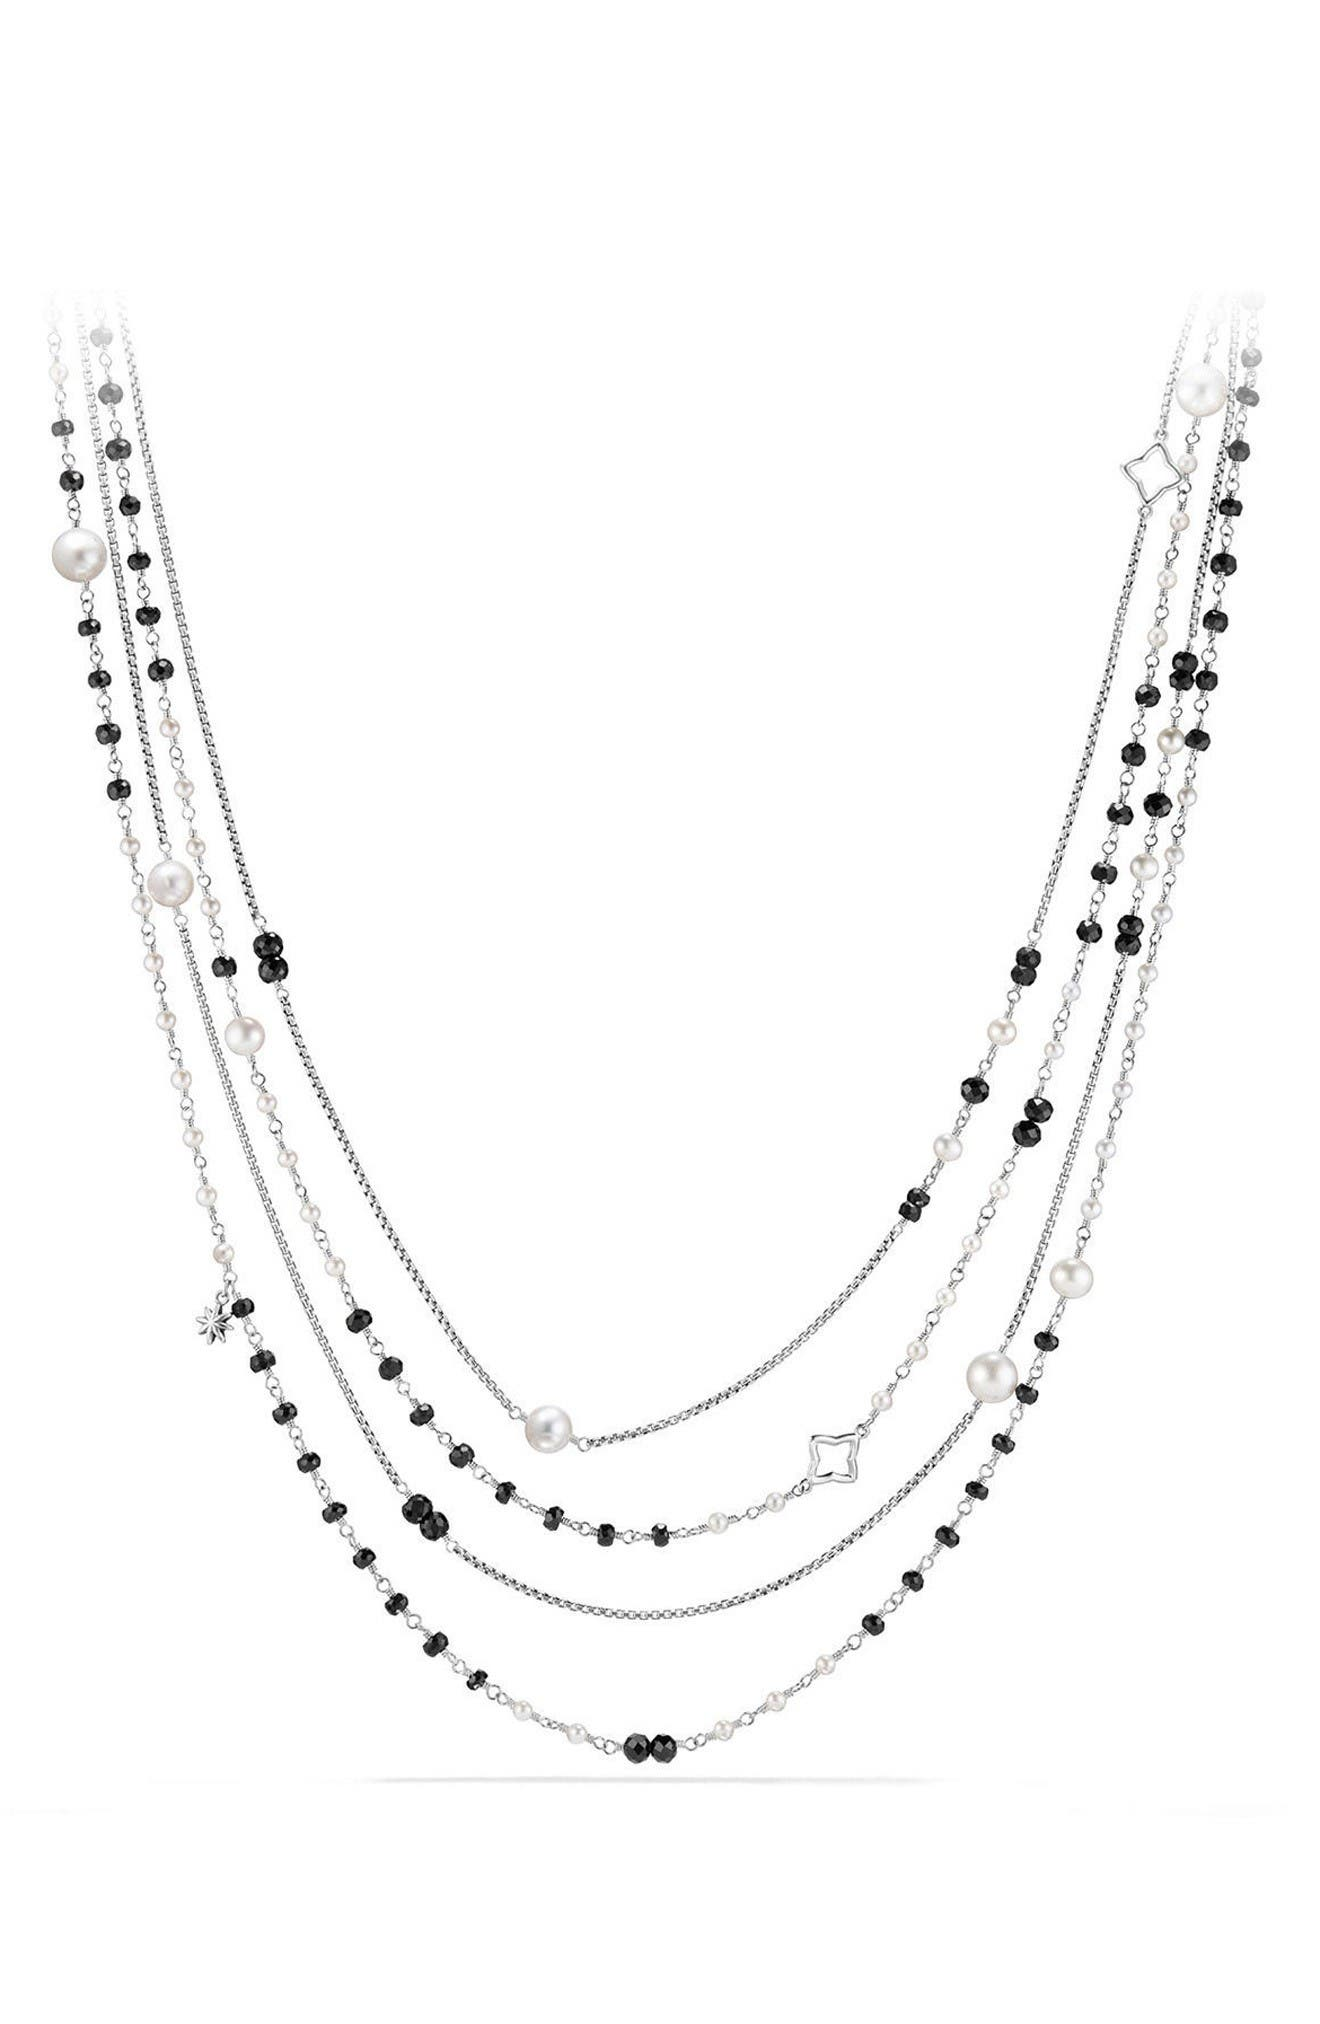 Main Image - David Yurman Solari Two Row Pearl Chain Necklace